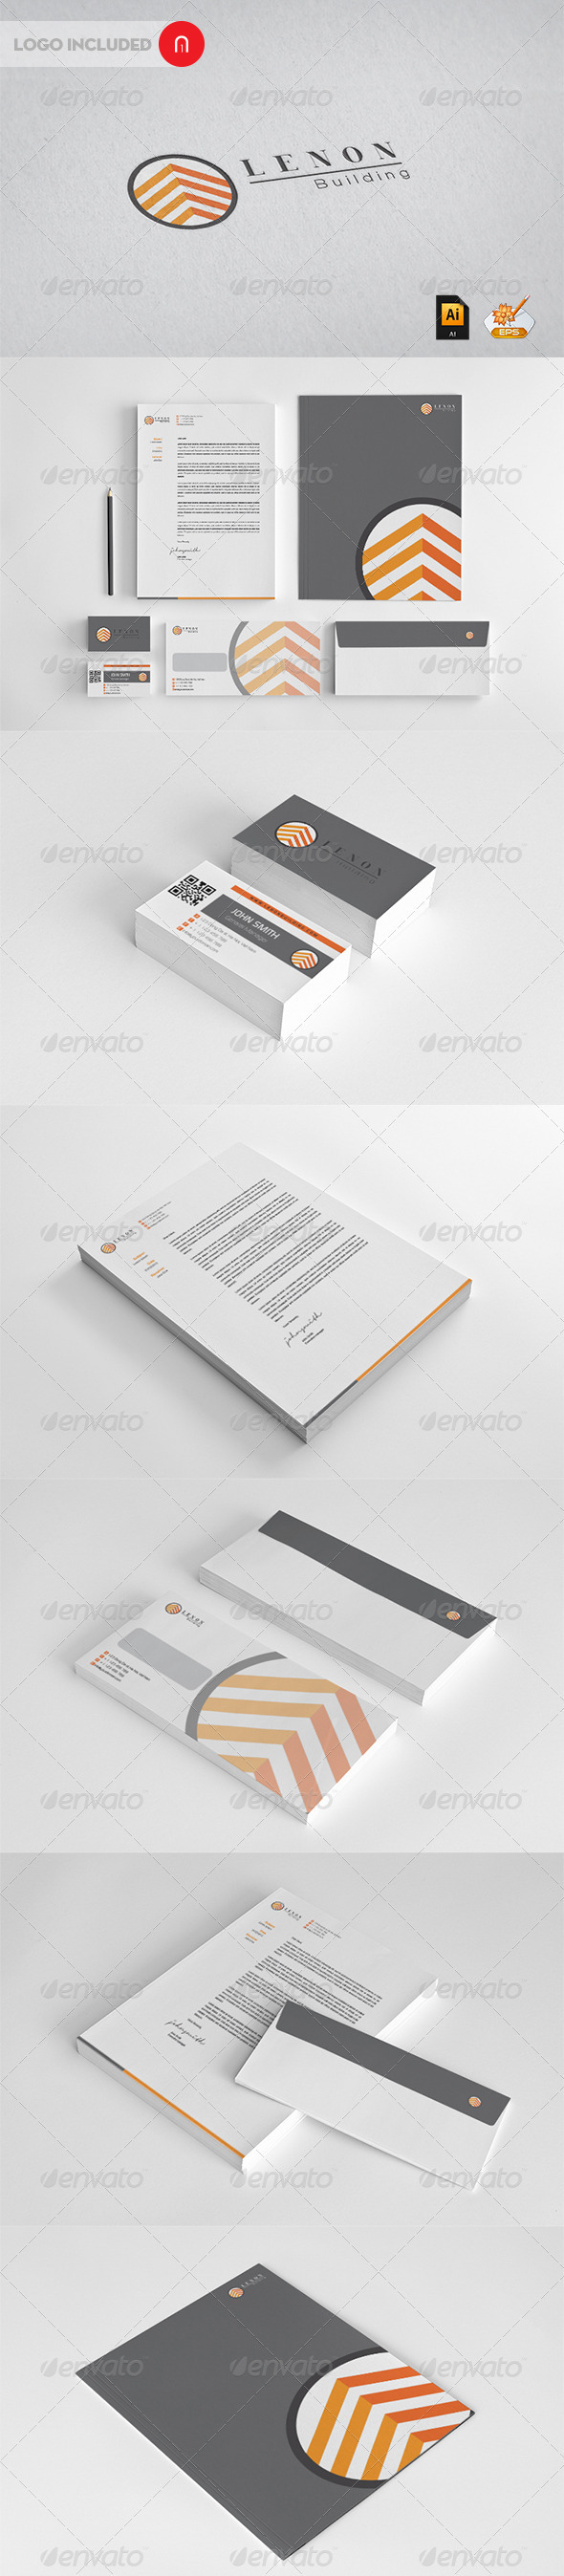 Corporate Identity - Lenon Building - Stationery Print Templates